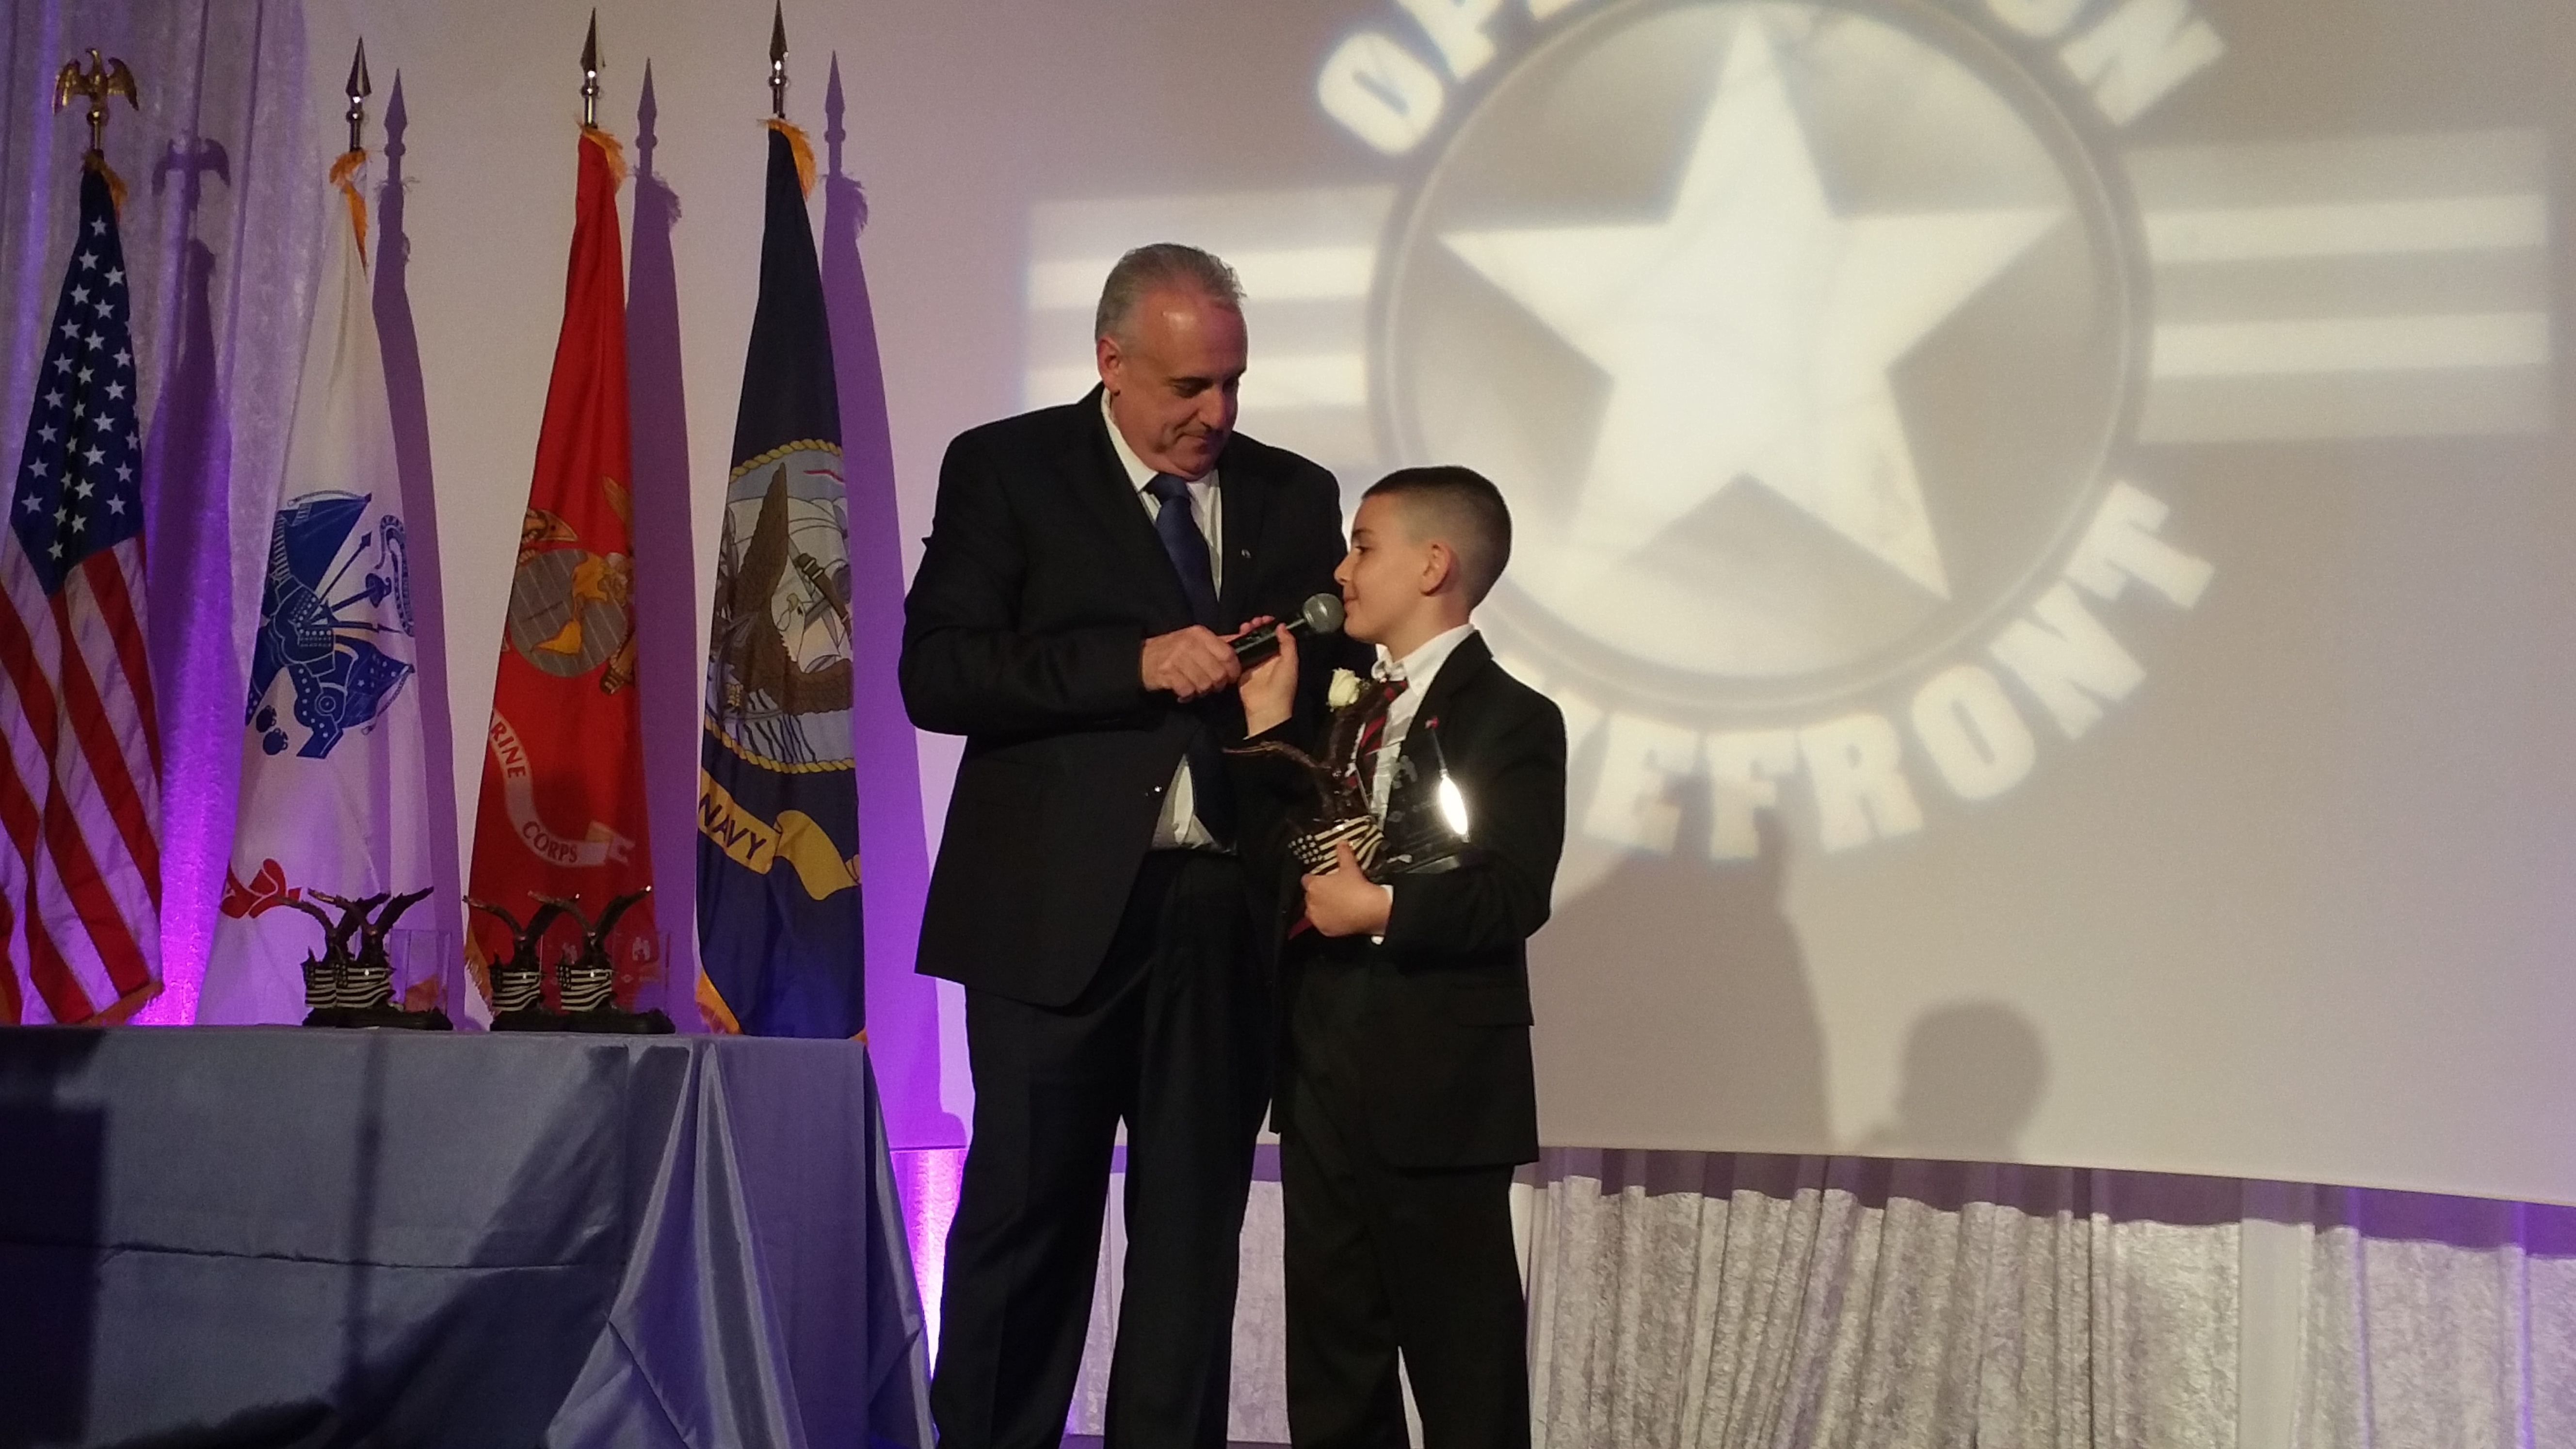 Carnival Brand Ambassador John Heald Entertained Military Families And Supporters At Recent Military Child Of The Year Awards In Washington DC; Honorees Awarded Special Trip To NYC To Attend U.S. Inaugural OF Carnival Vista